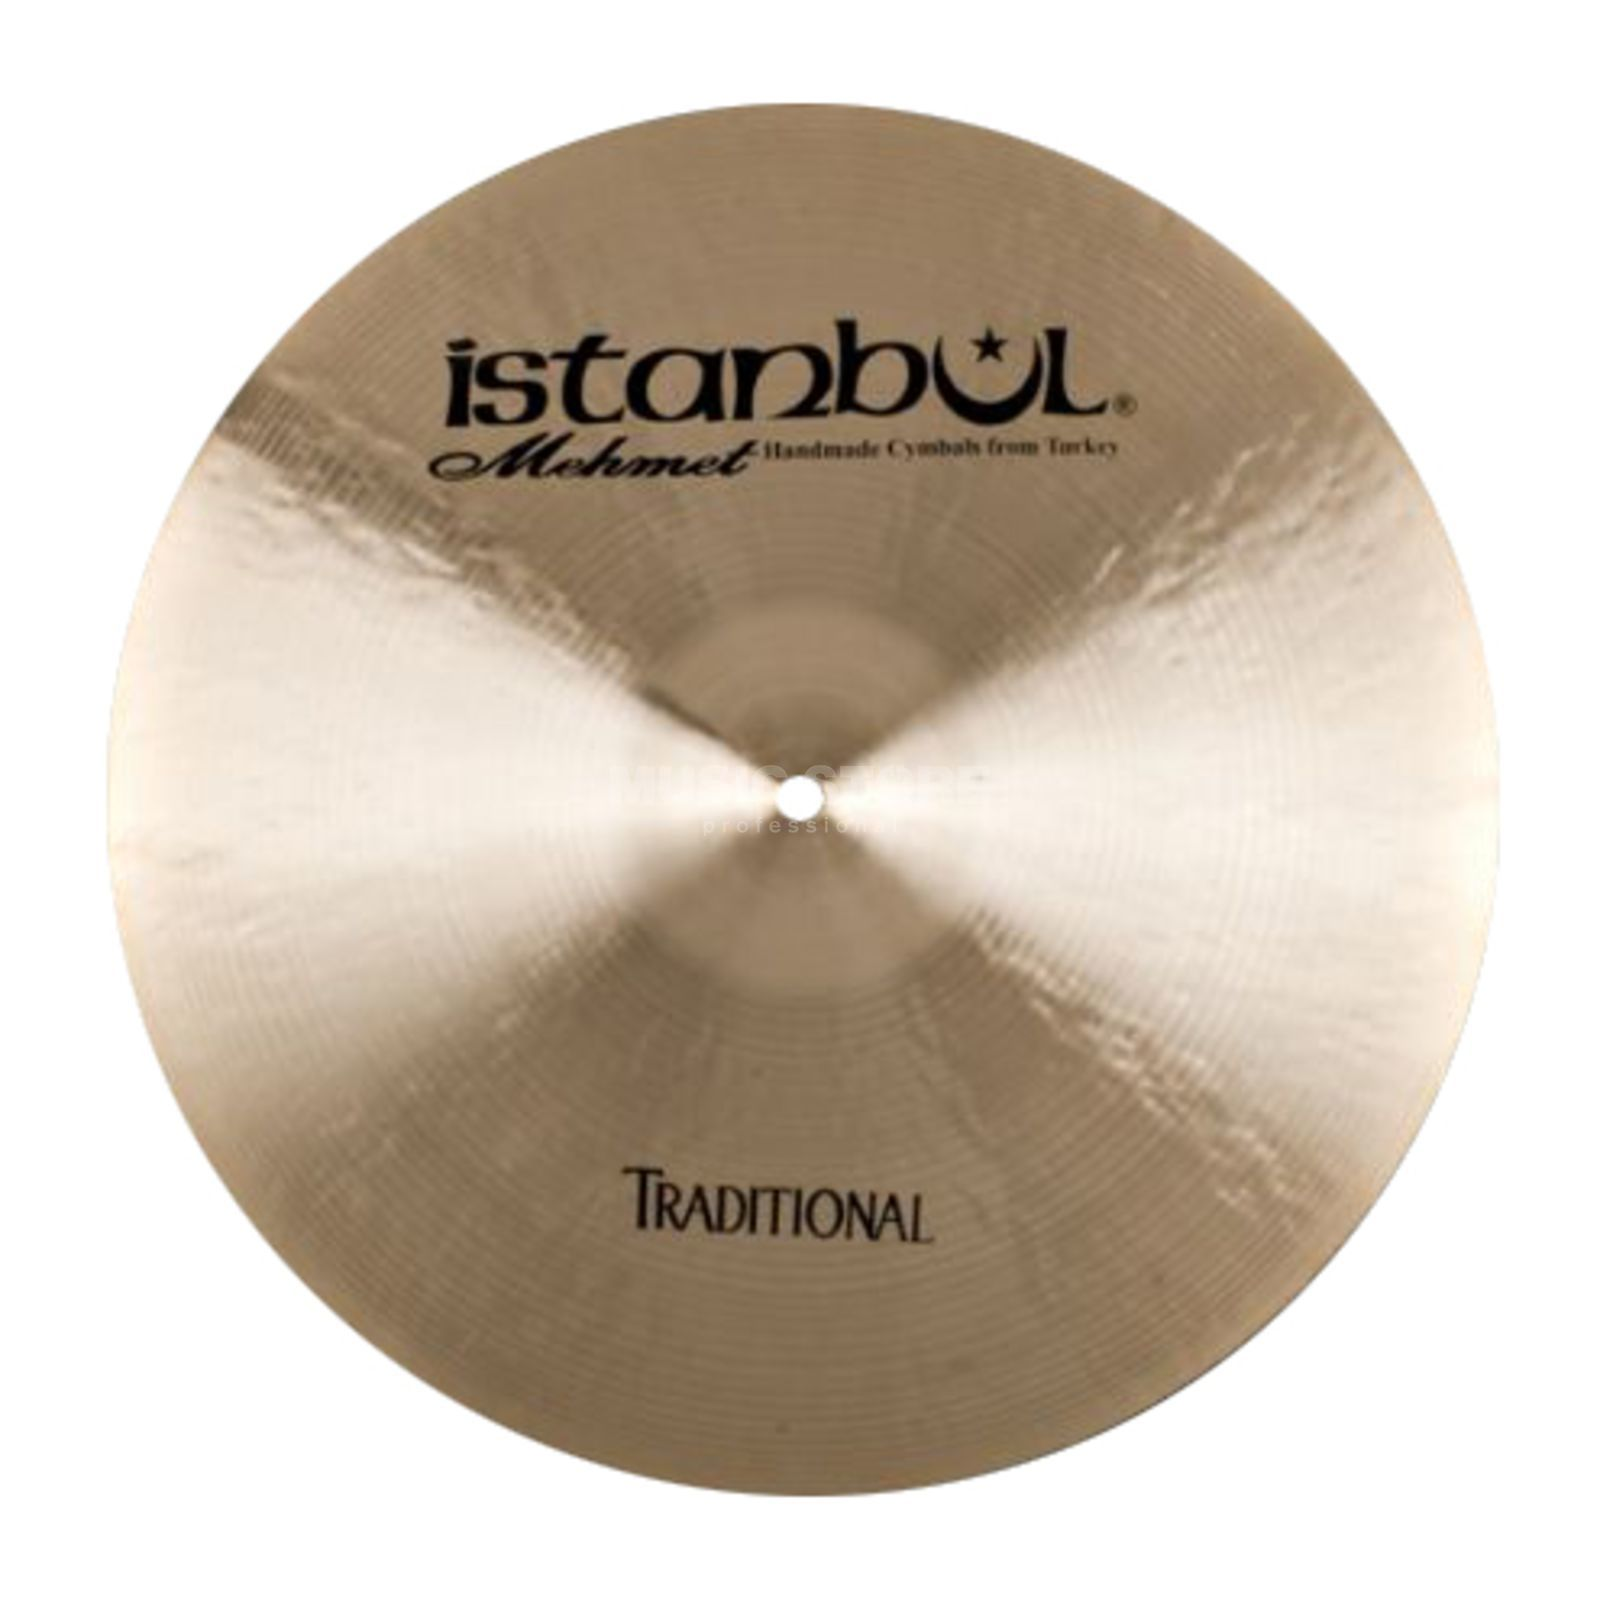 "Istanbul Traditional Heavy Crash 17"", CVY18 Produktbillede"